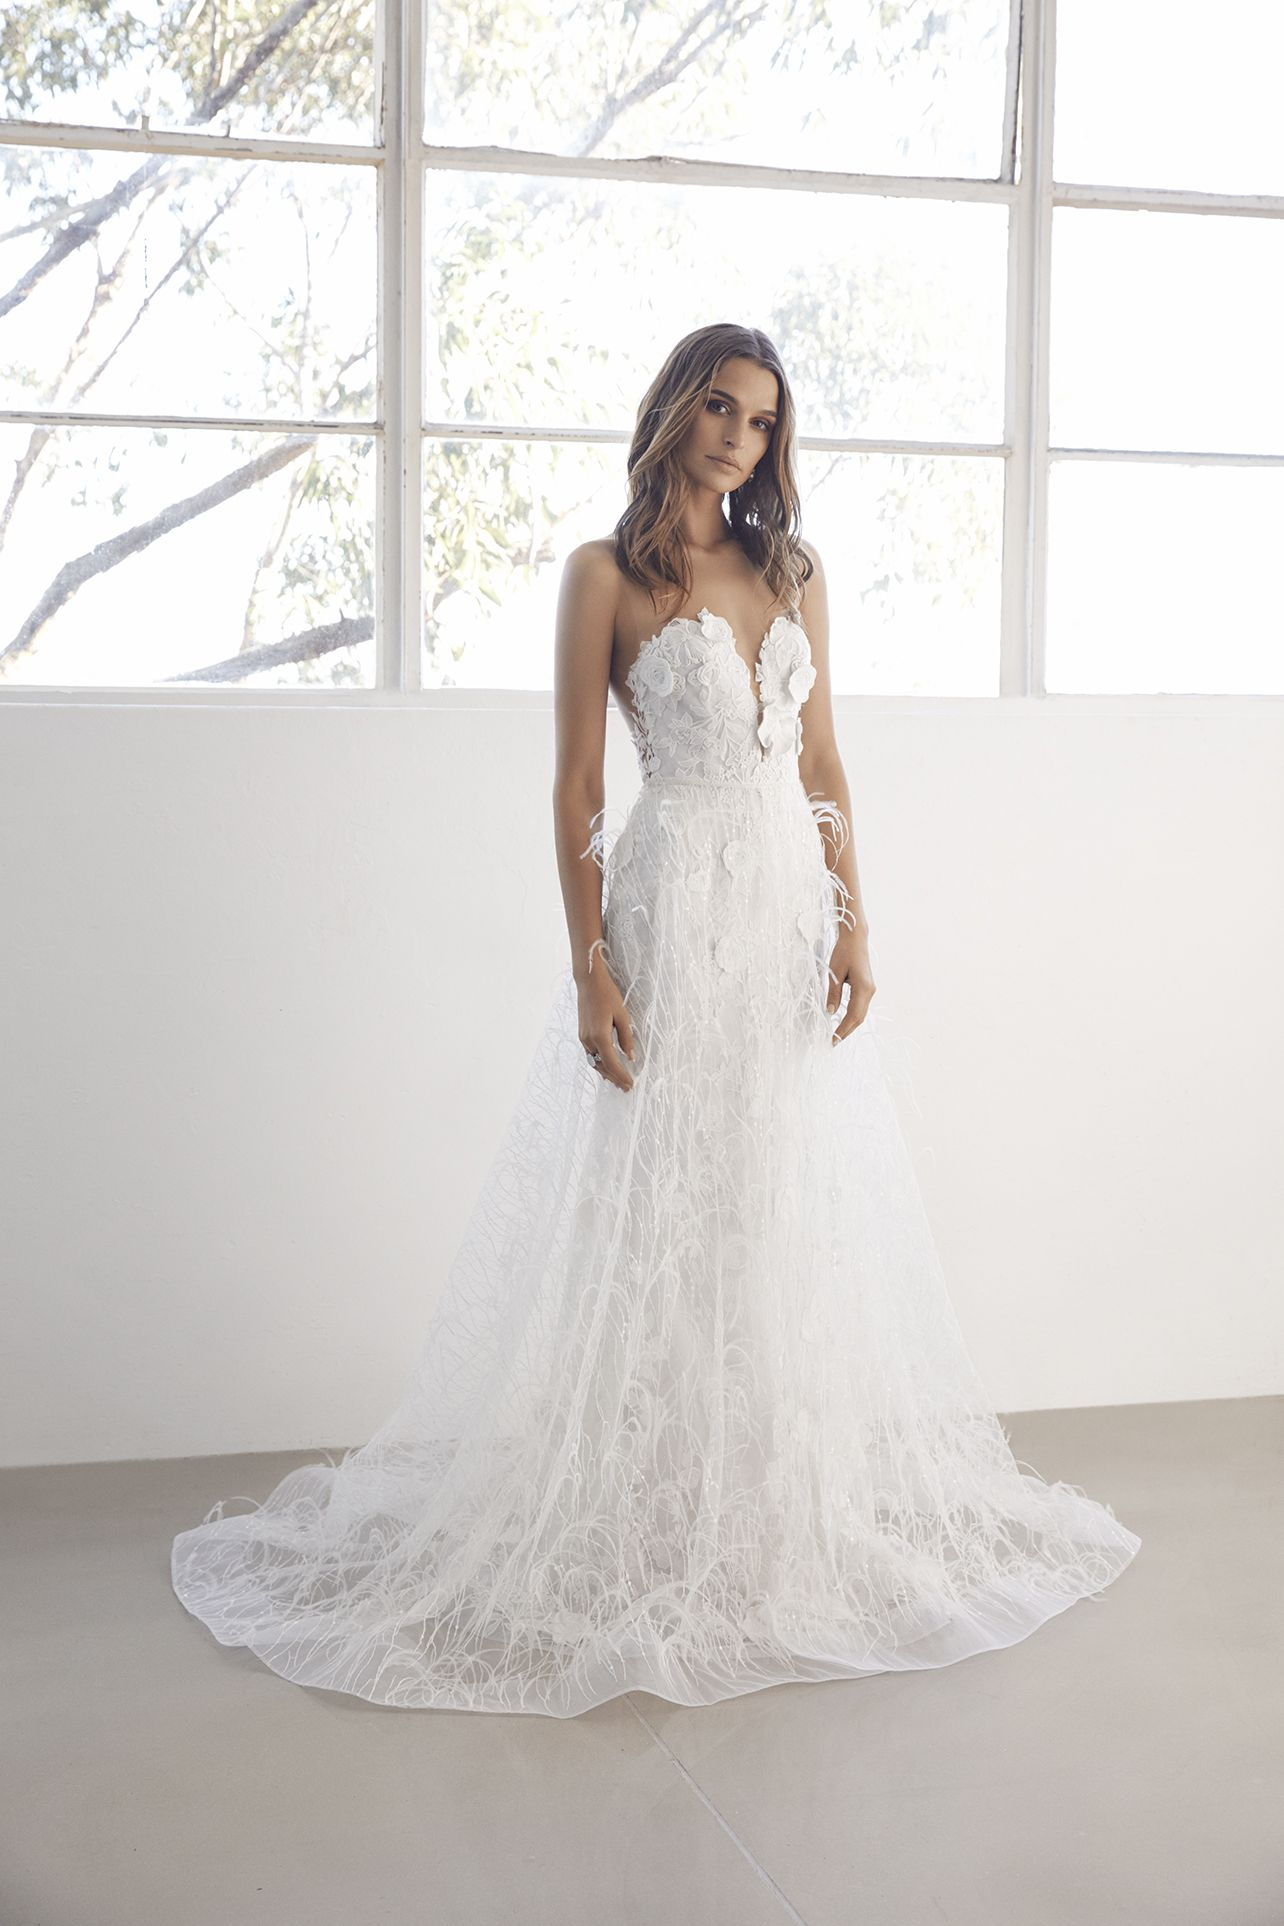 124fb02c340 3D appliqué tulle lace gown with a fit and flare silhouette and illusion  strapless sweetheart neckline. Optional feathered overskirt.